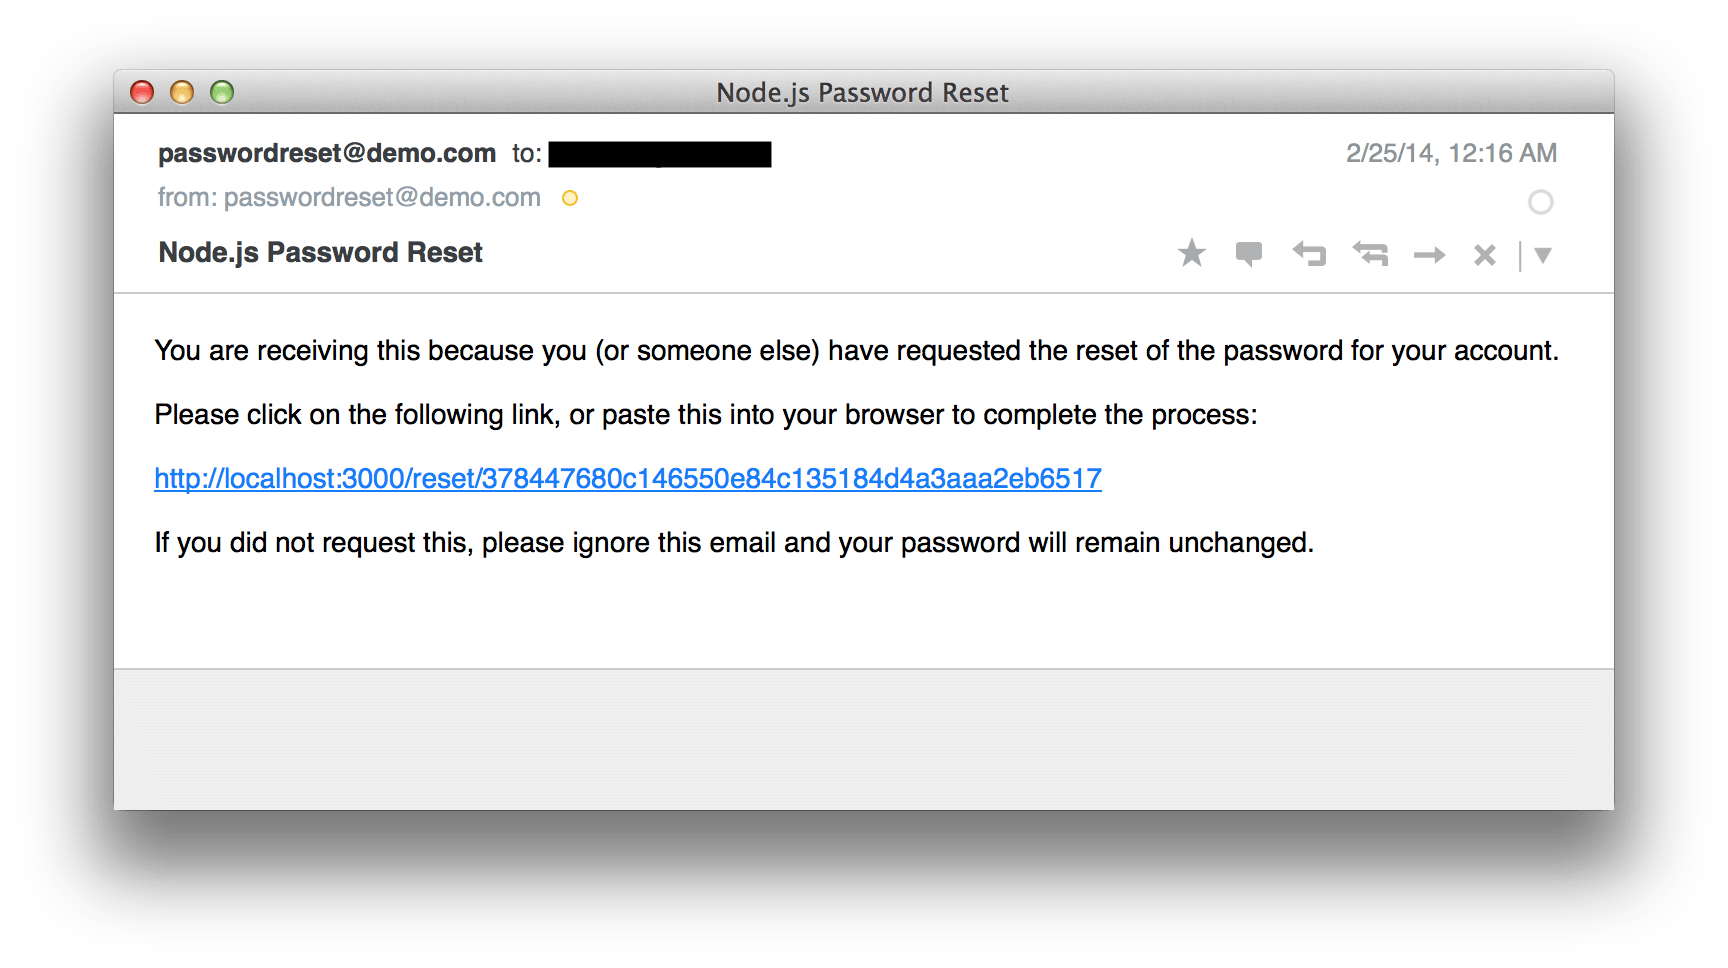 How To Implement Password Reset In Nodejs